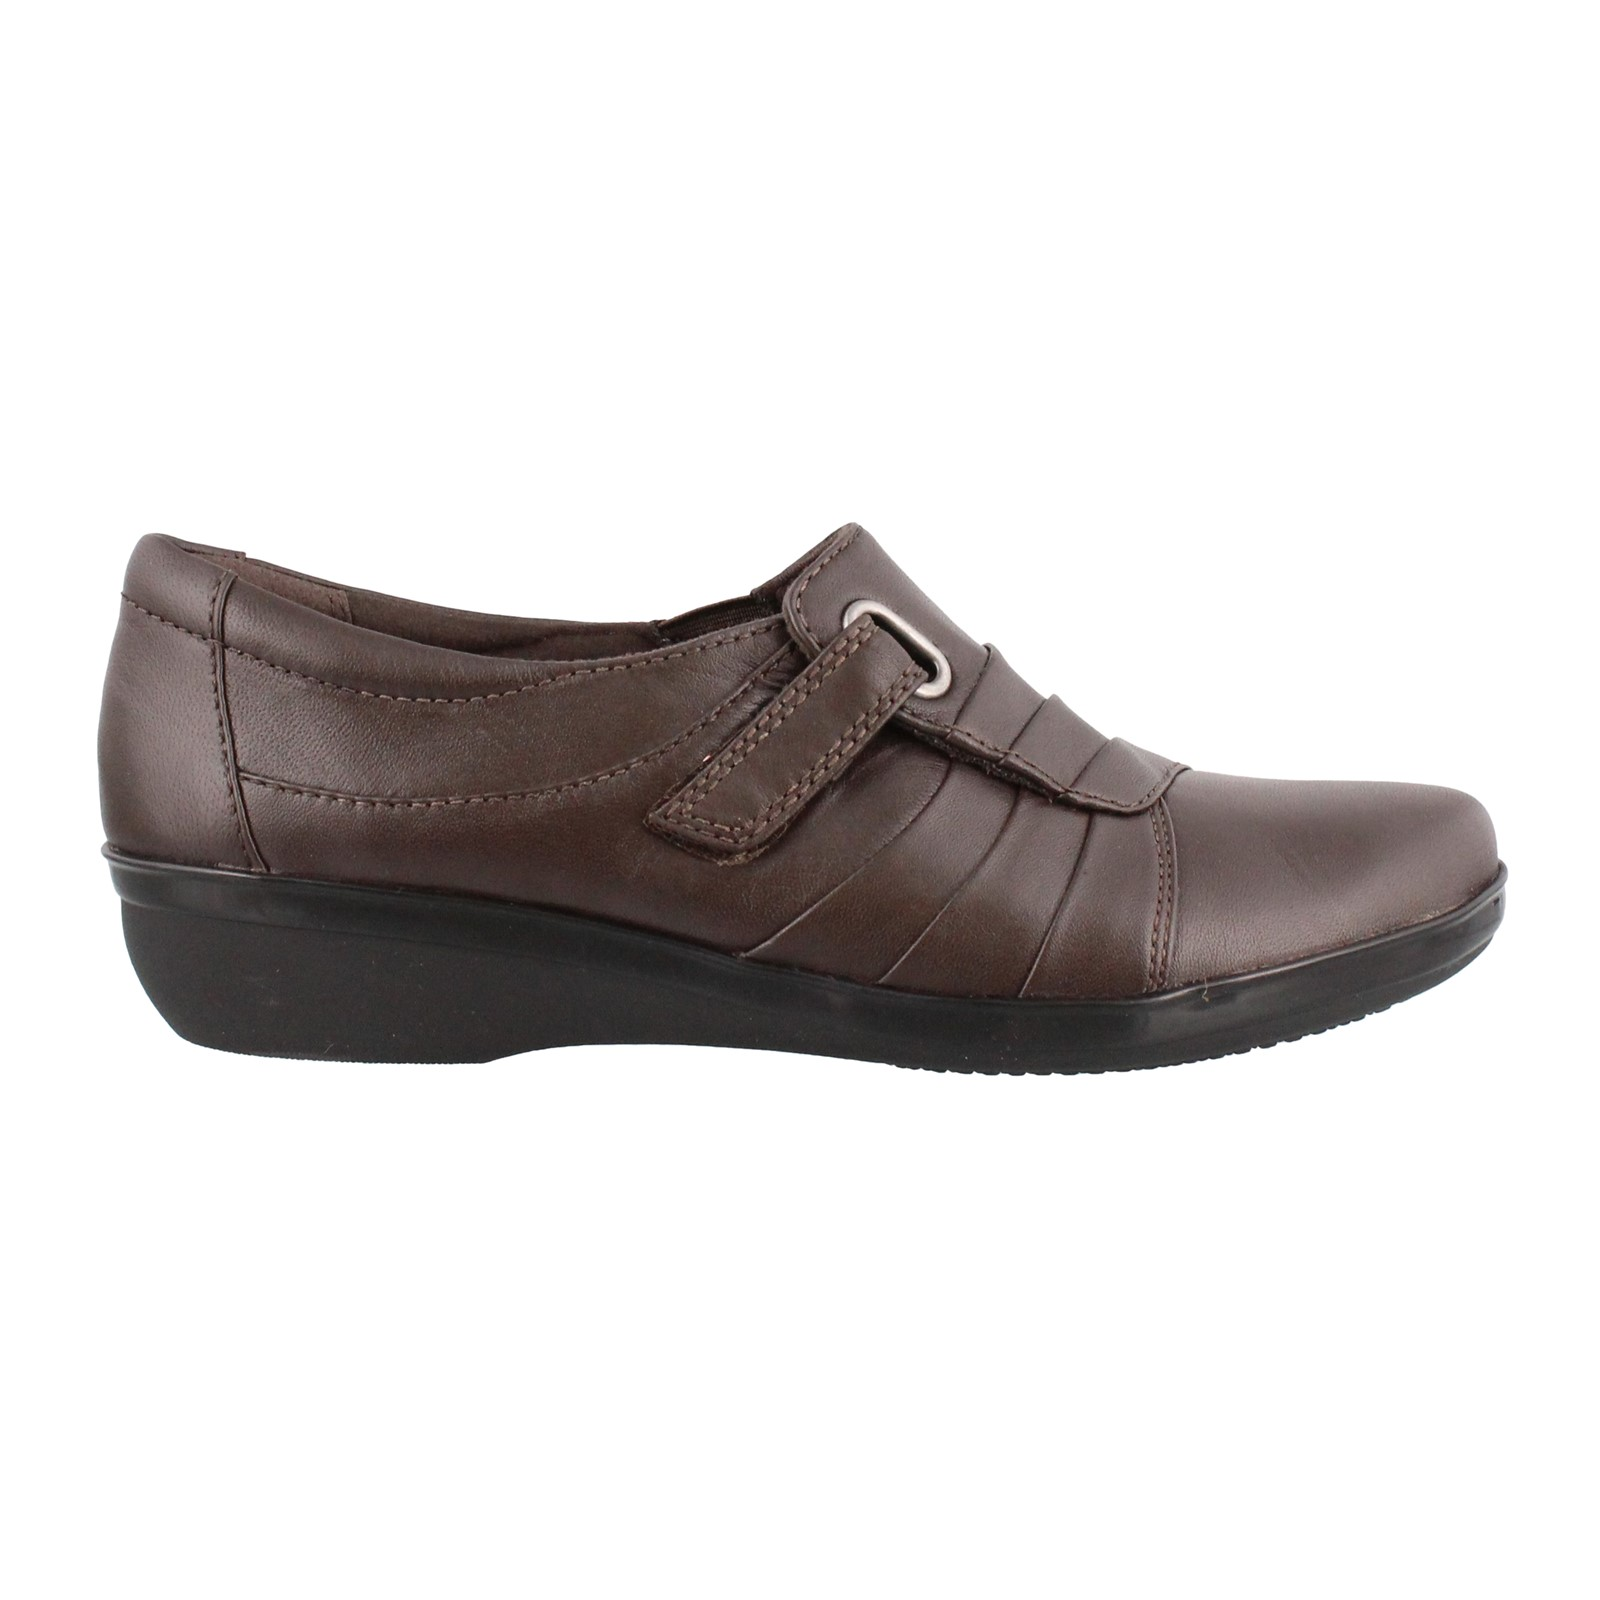 Women's Clarks, Everlay Luna Slip on Shoe